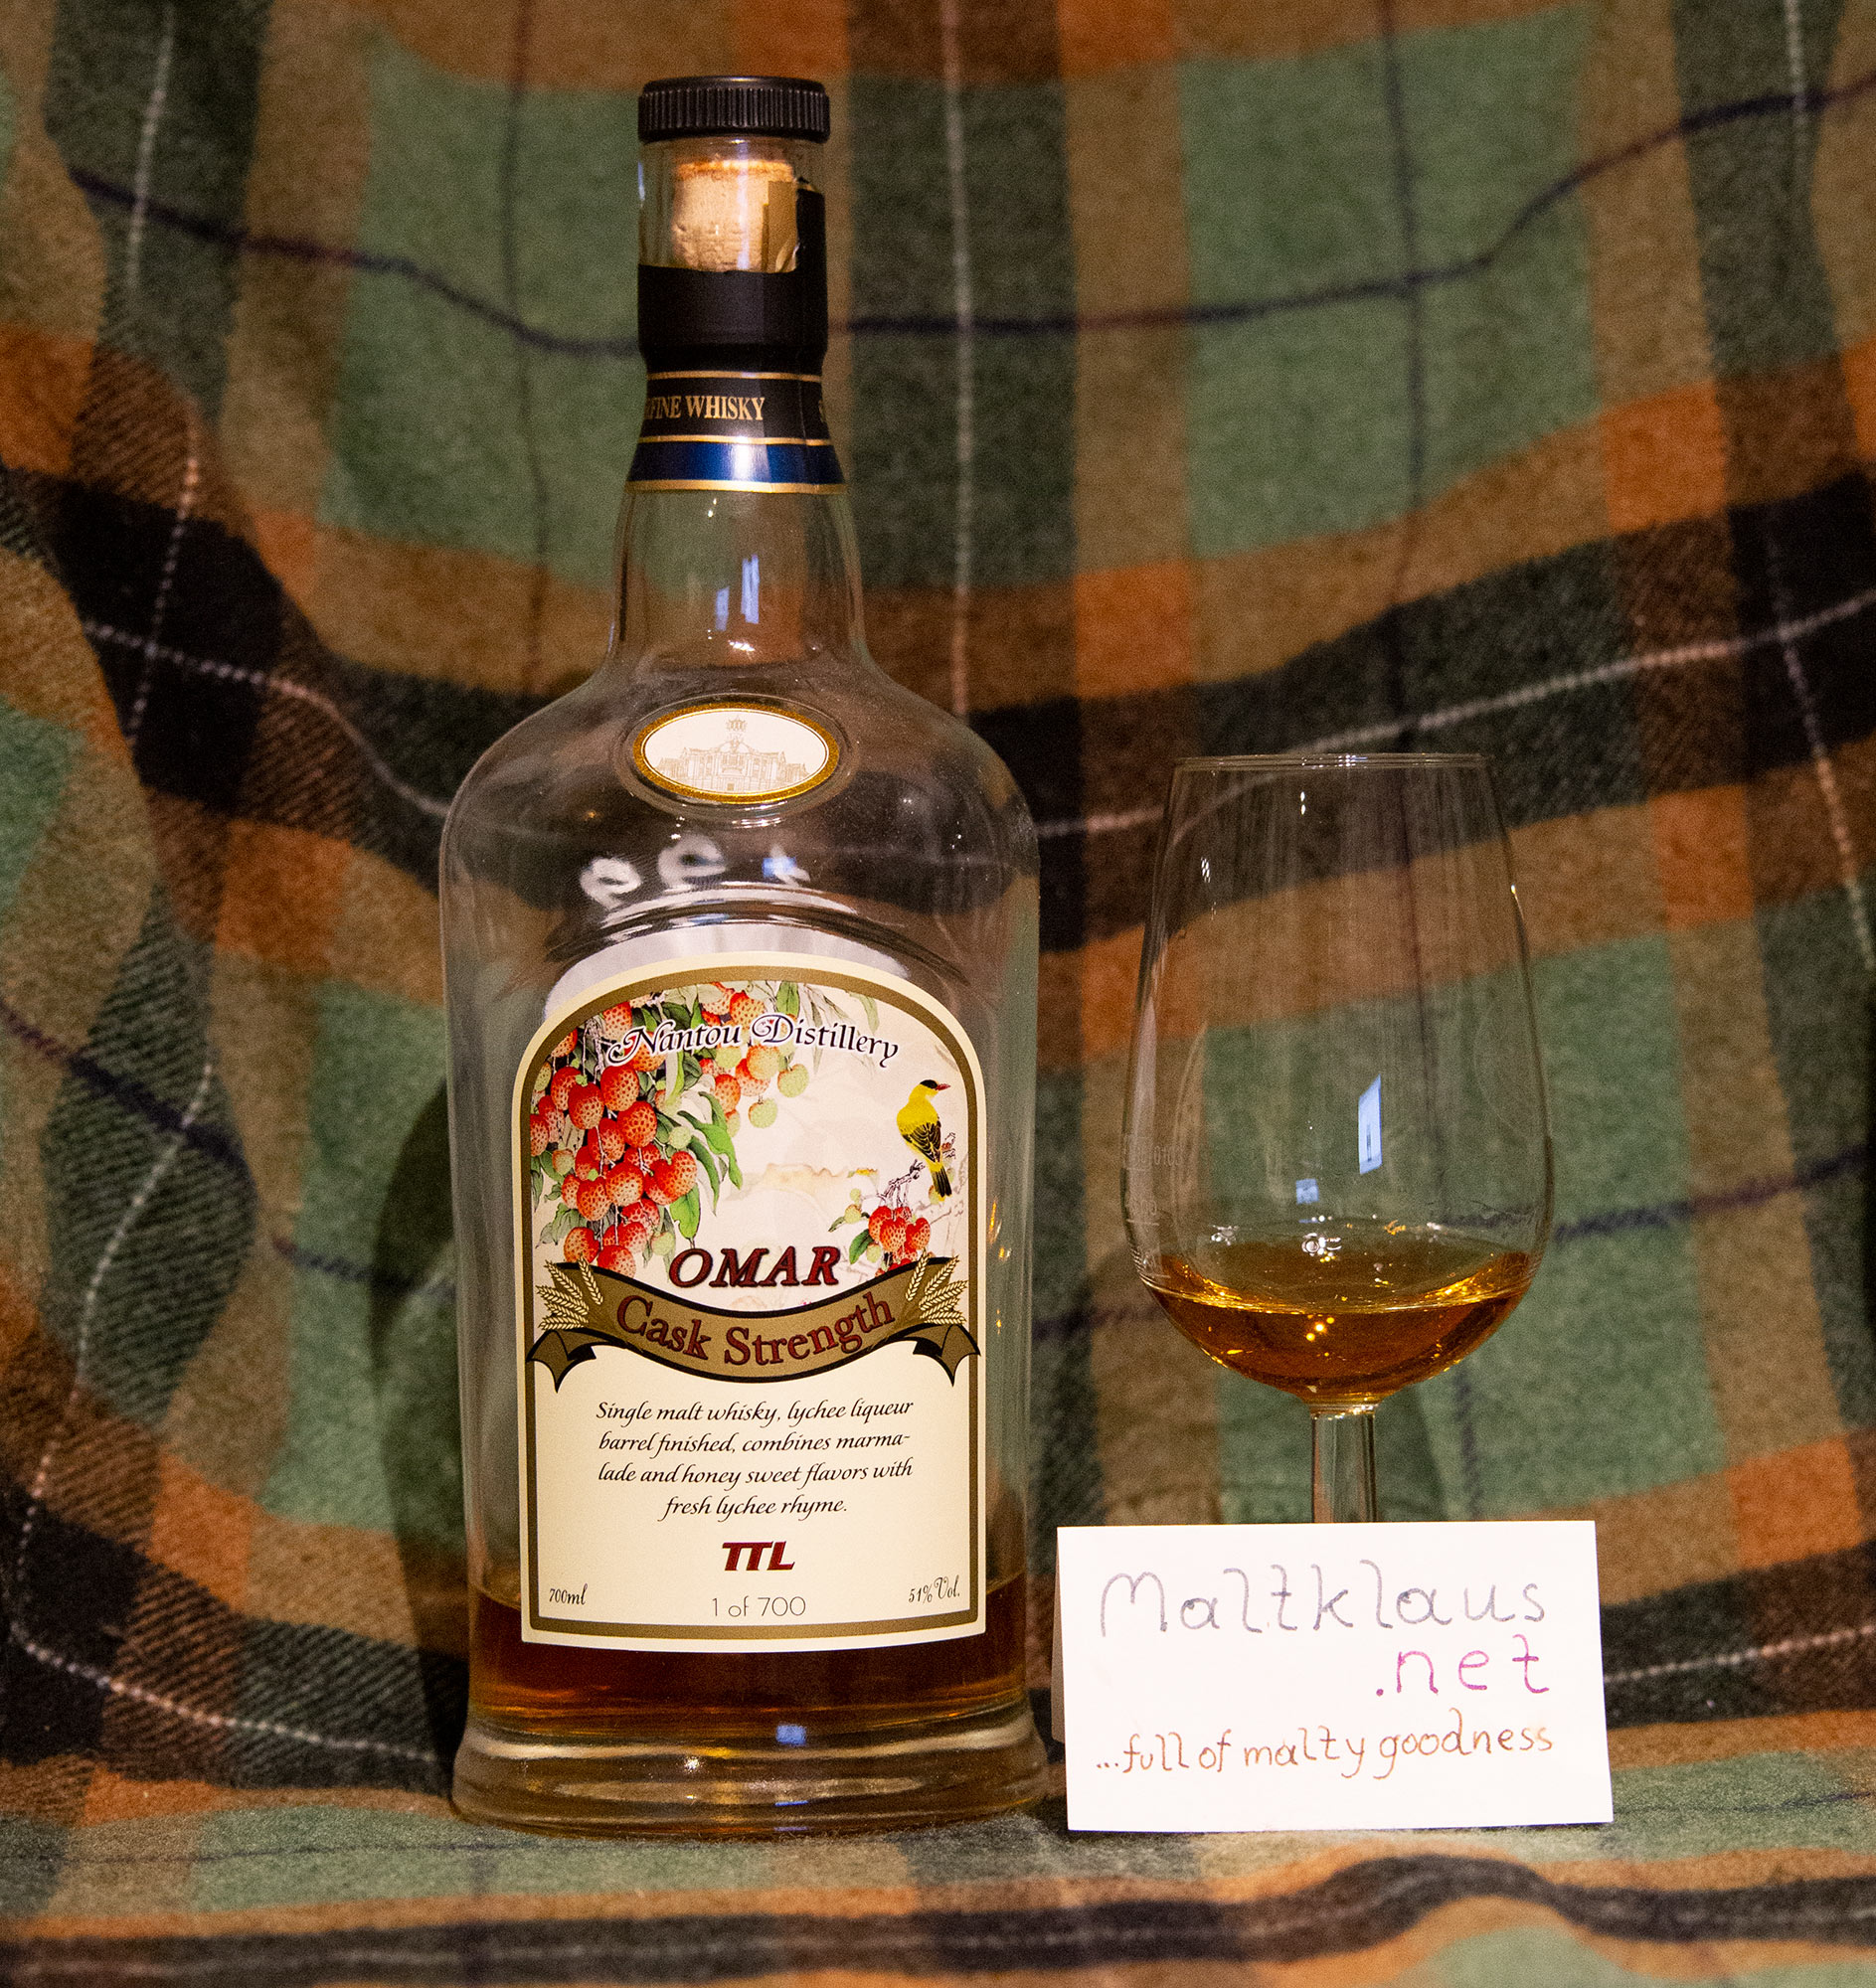 Nantou Omar cask strength single malt - lychee liqueur barrel finish